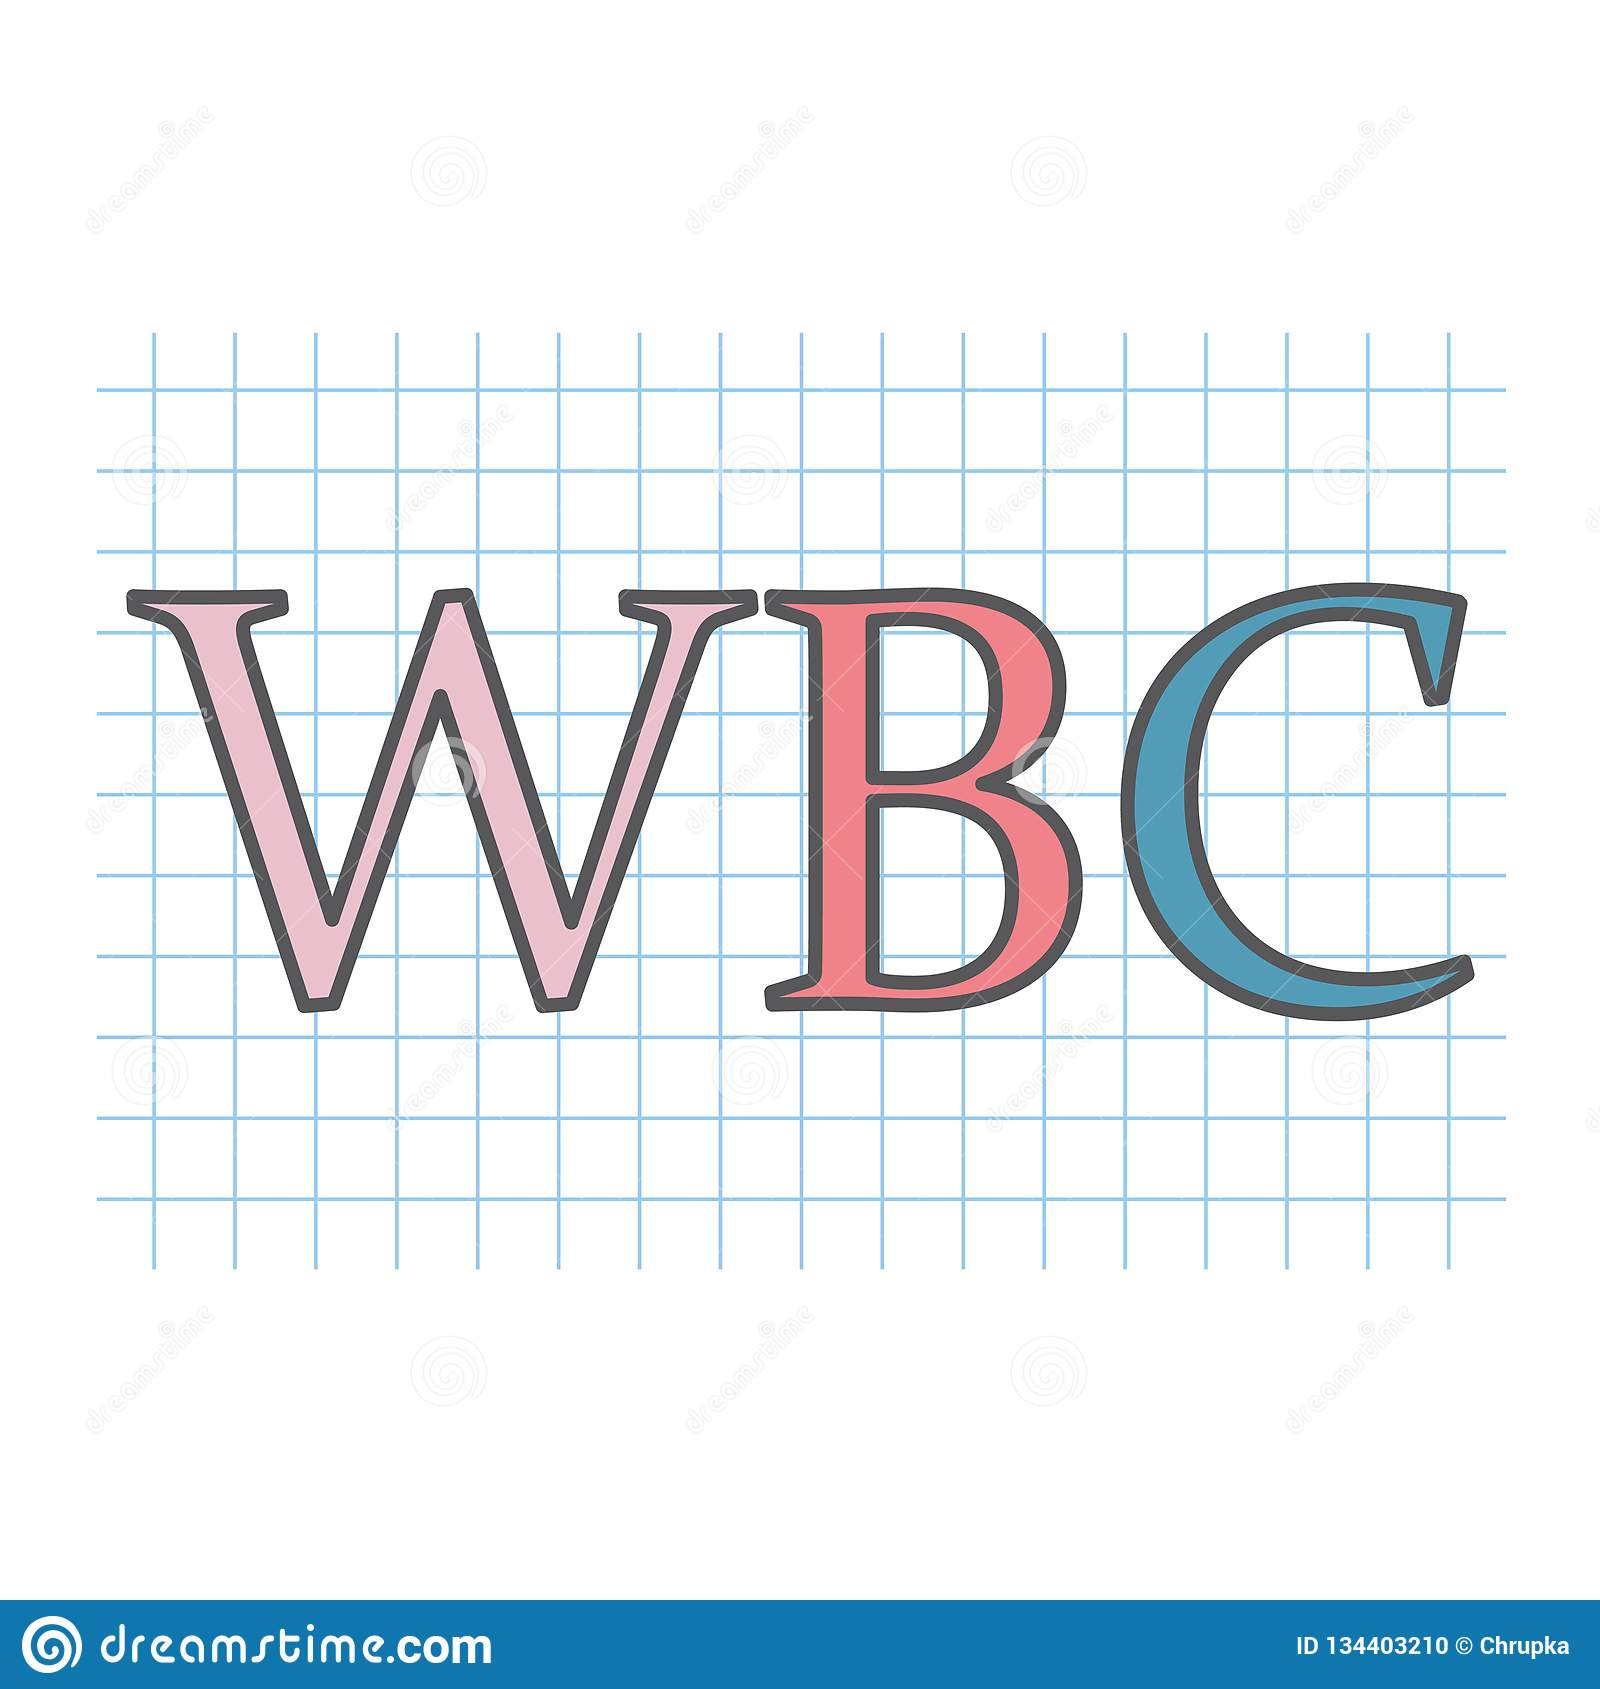 WBC White Blood Cell acronym on checkered paper sheet